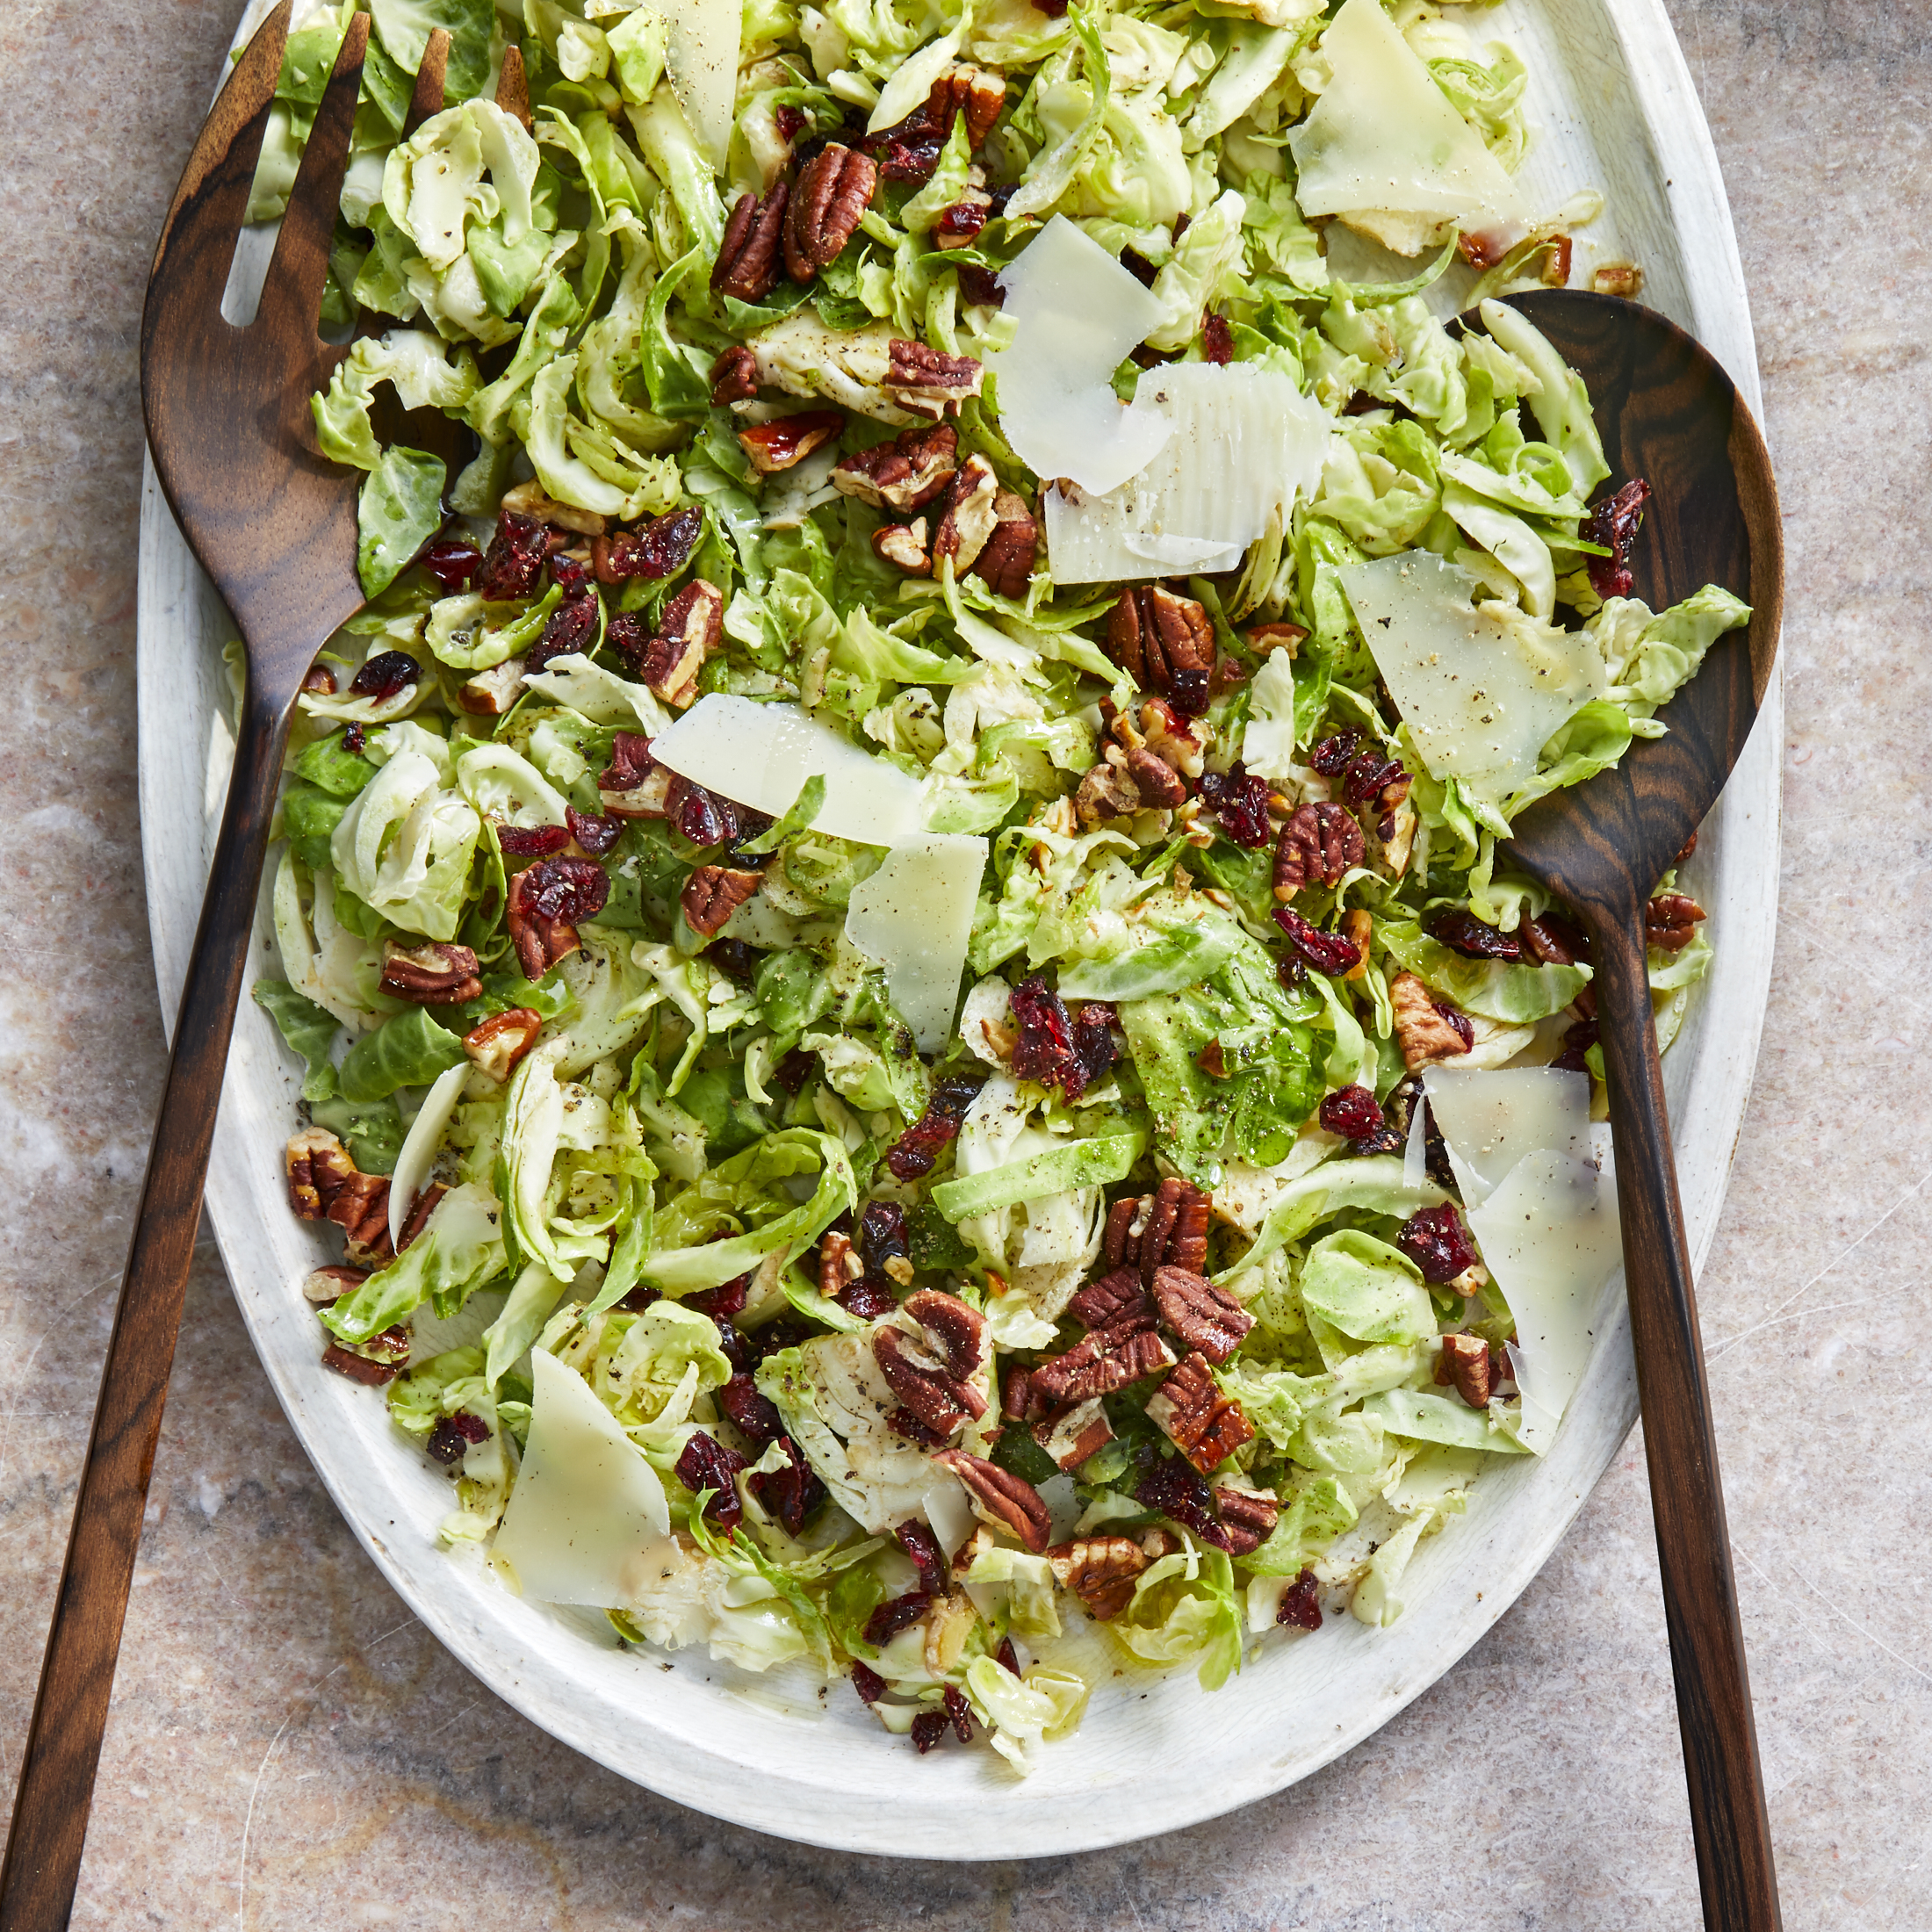 This raw Brussels sprouts salad featuring shaved Brussels sprouts, toasted pecans, sweet-tart cranberries and nutty Parmesan cheese is tossed with a light and lemony vinaigrette. You can shave the Brussels sprouts using a chef's knife--or use the slicing attachment of your food processor to make it even easier. This quick and easy recipe is perfect for fall or anytime you have crisp, fresh Brussels sprouts on hand. Source: EatingWell.com, November 2019